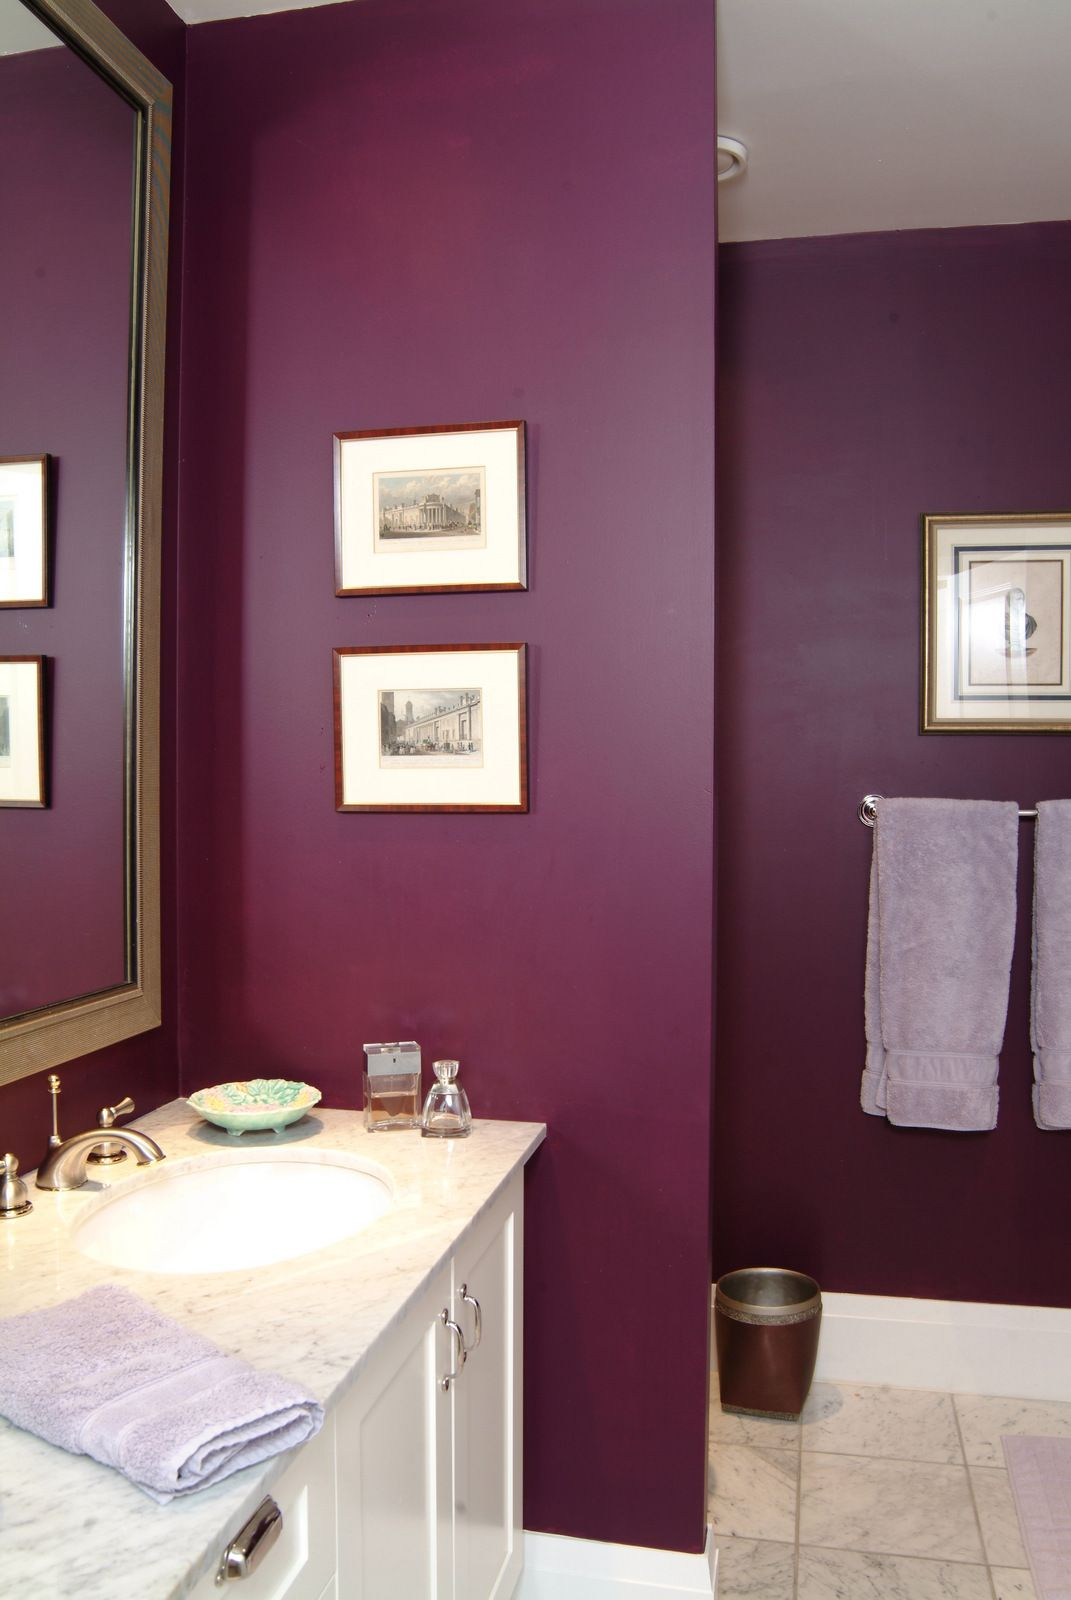 Plum Purple bathroom from interior design project by Jane ...